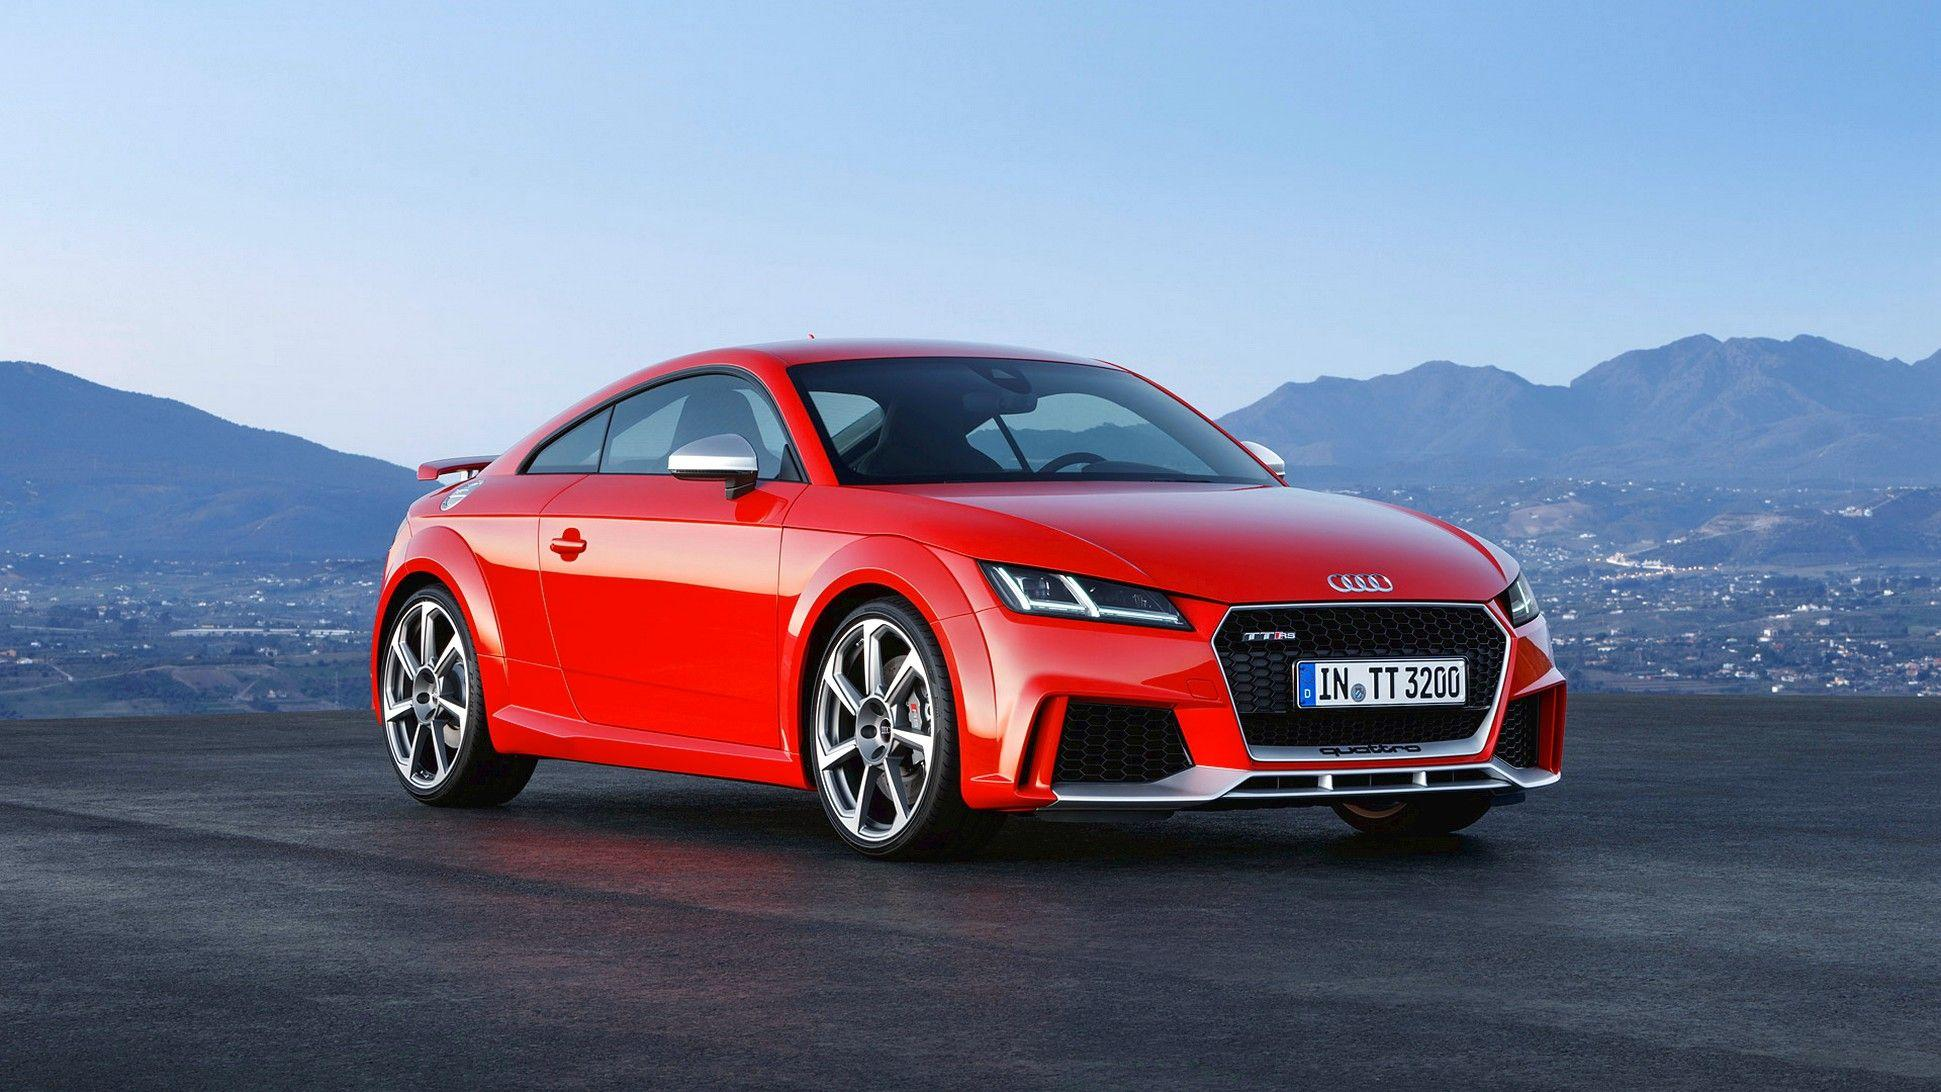 2017 Audi Tt Rs V5 Hd Car Wallpapers